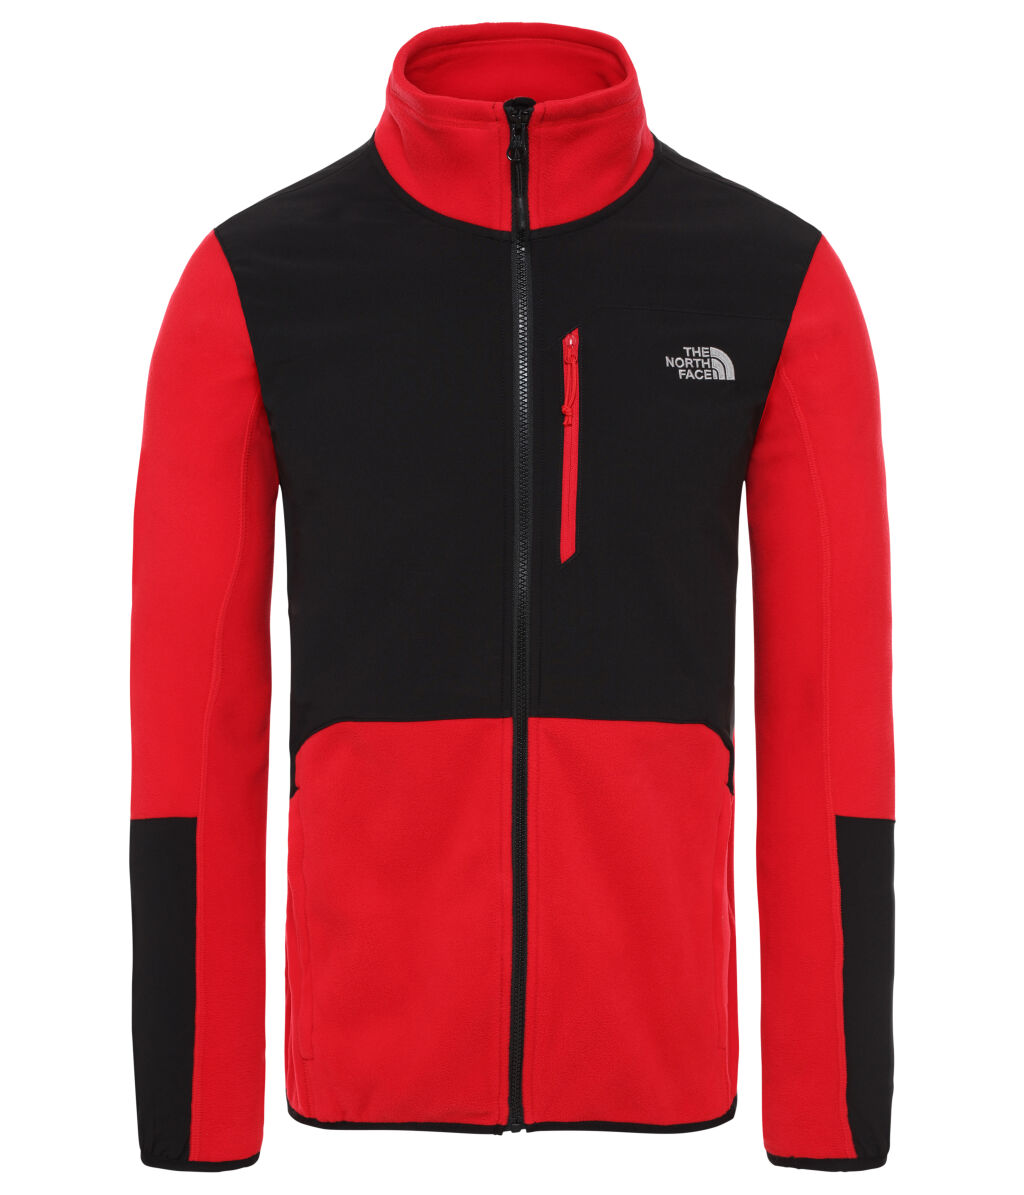 The North Face Glacier pro full zip